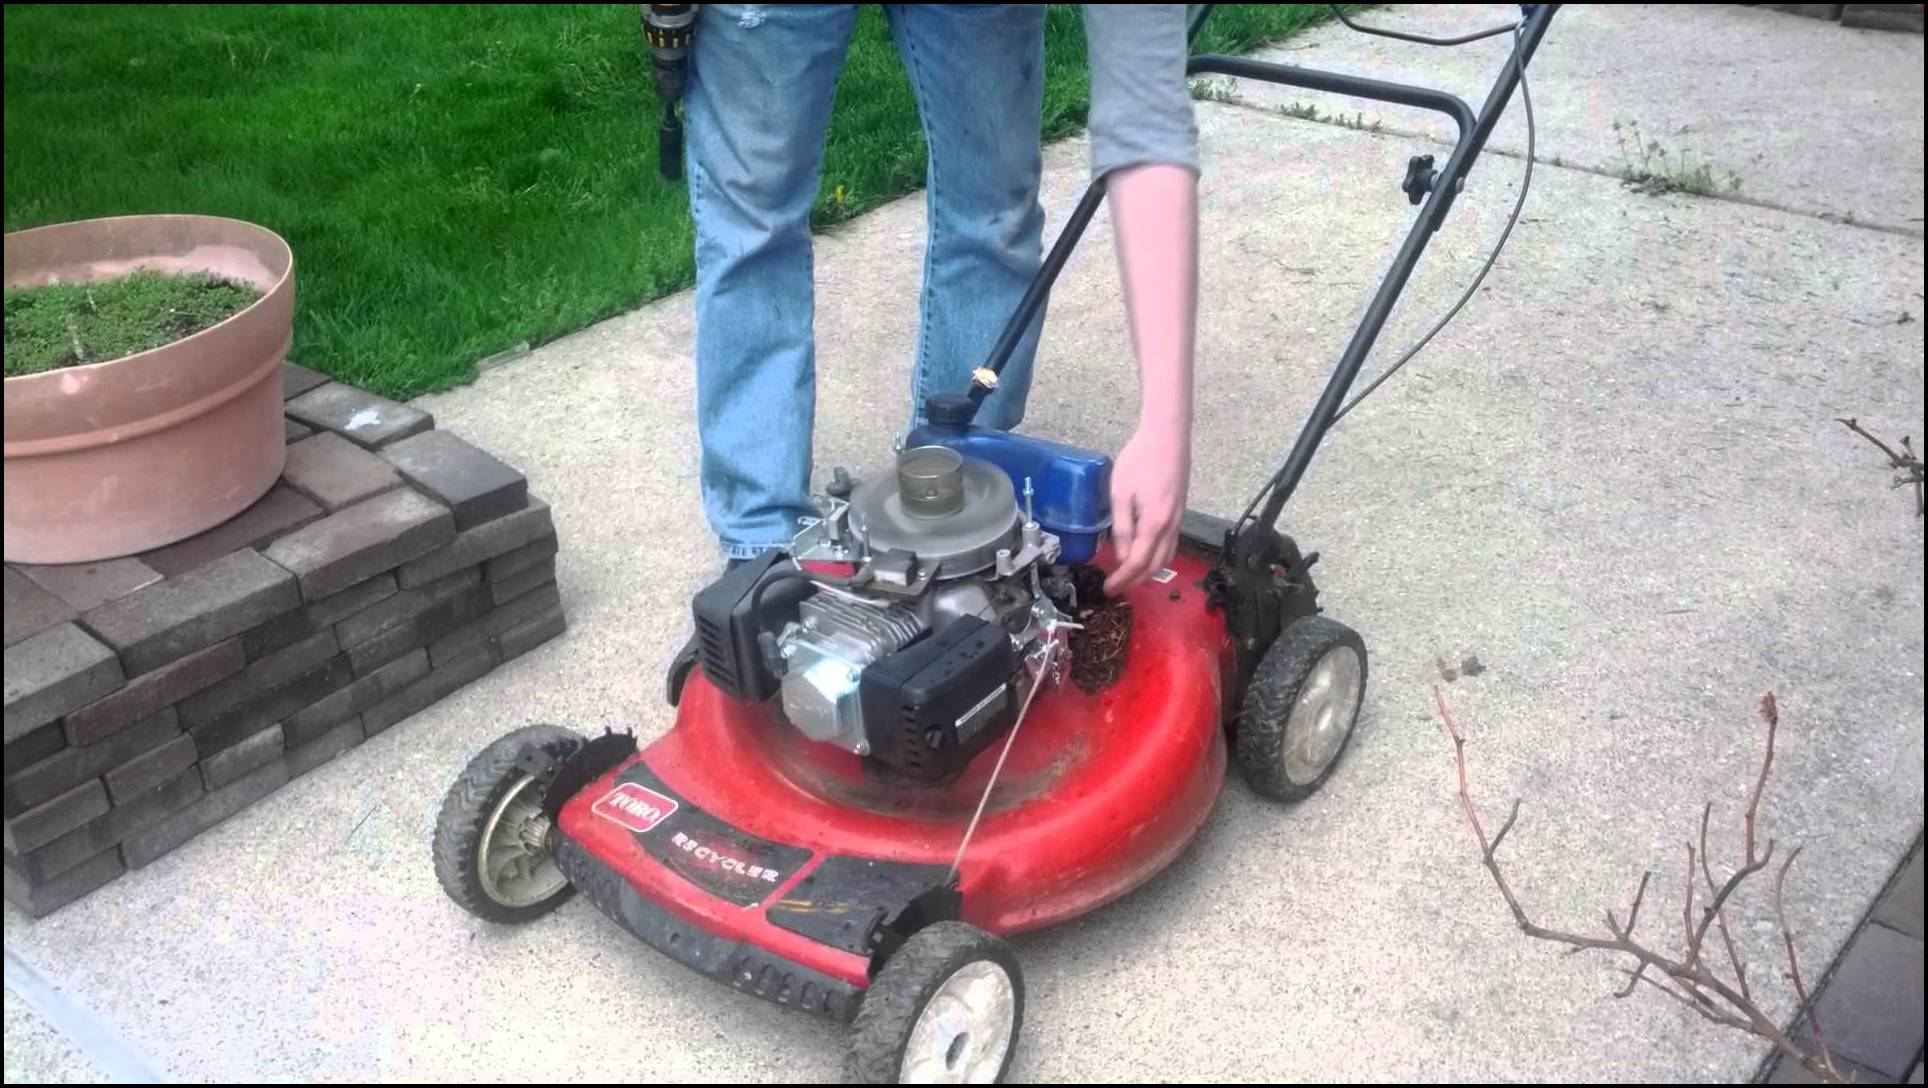 Harbor Freight Mower : Harbor freight lawn mower engine the garden